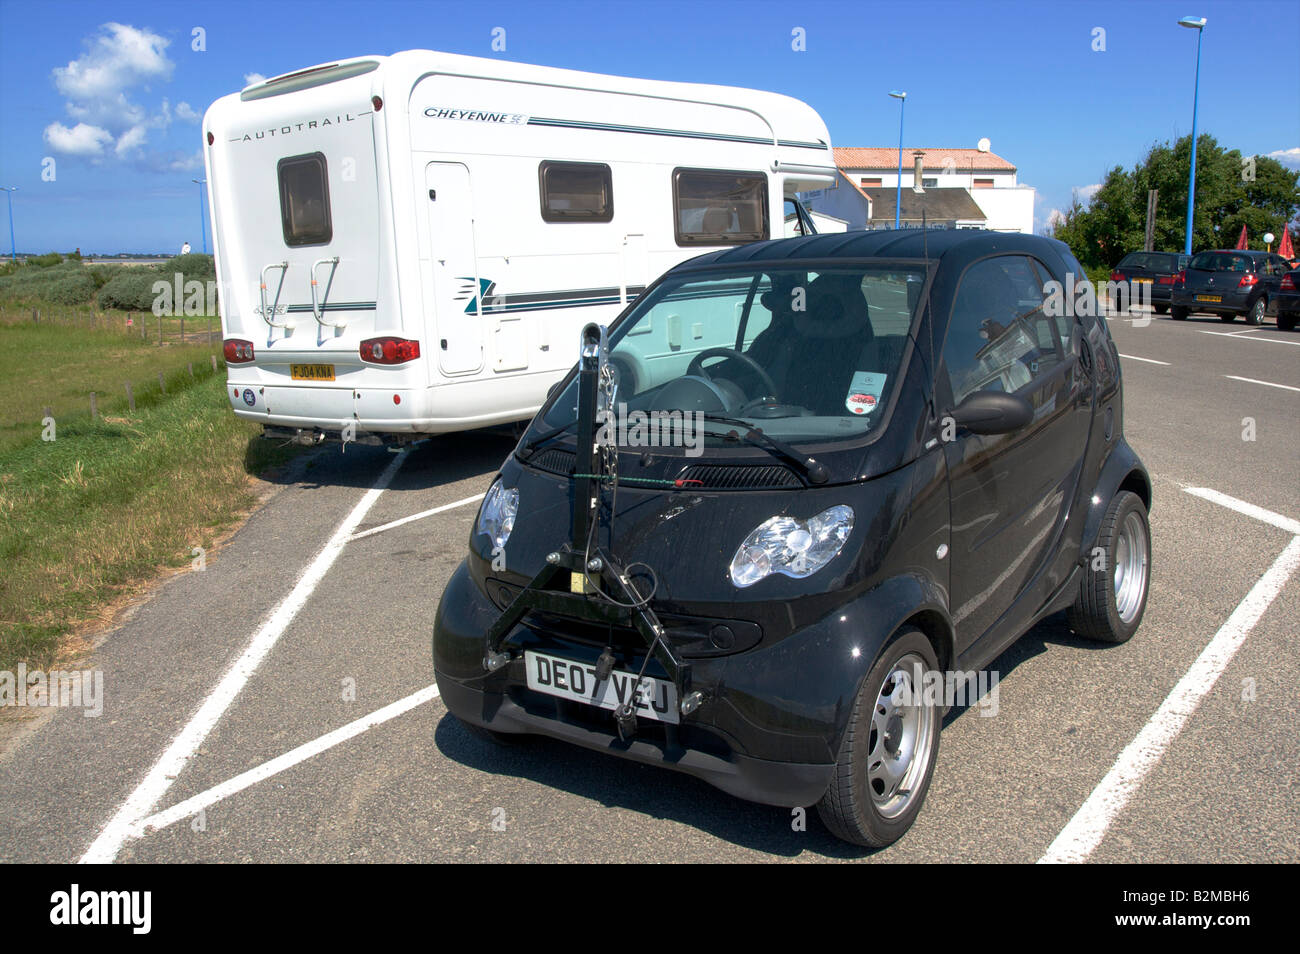 Smart Car With Tow Hitch At Front To Allow Towing Behind An Rv Stock